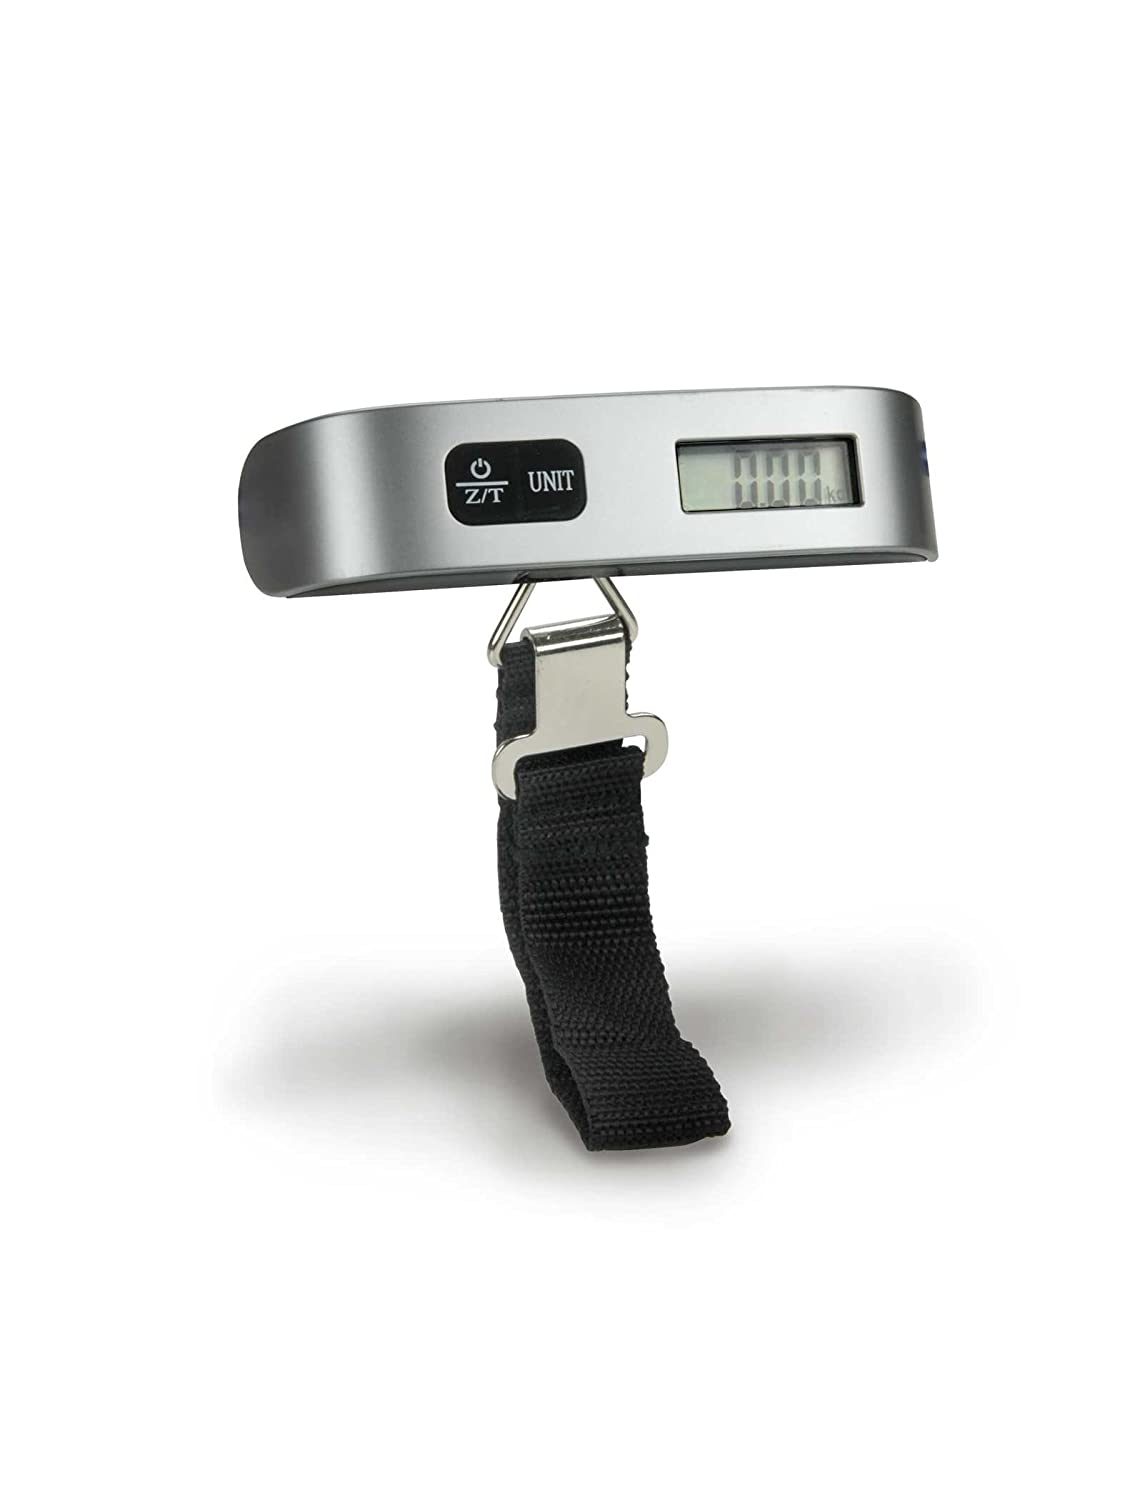 Top 10 Best Digital Luggage Scales For Travel